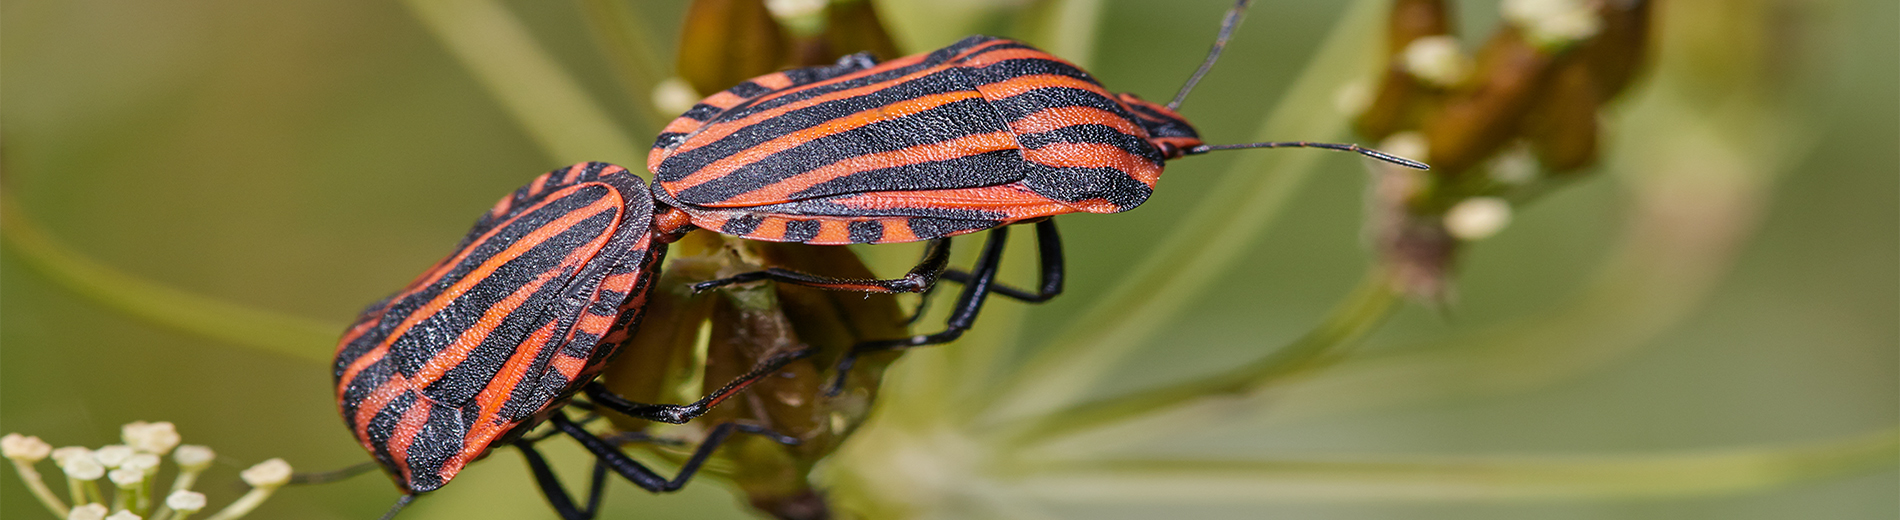 Exciting world of insects